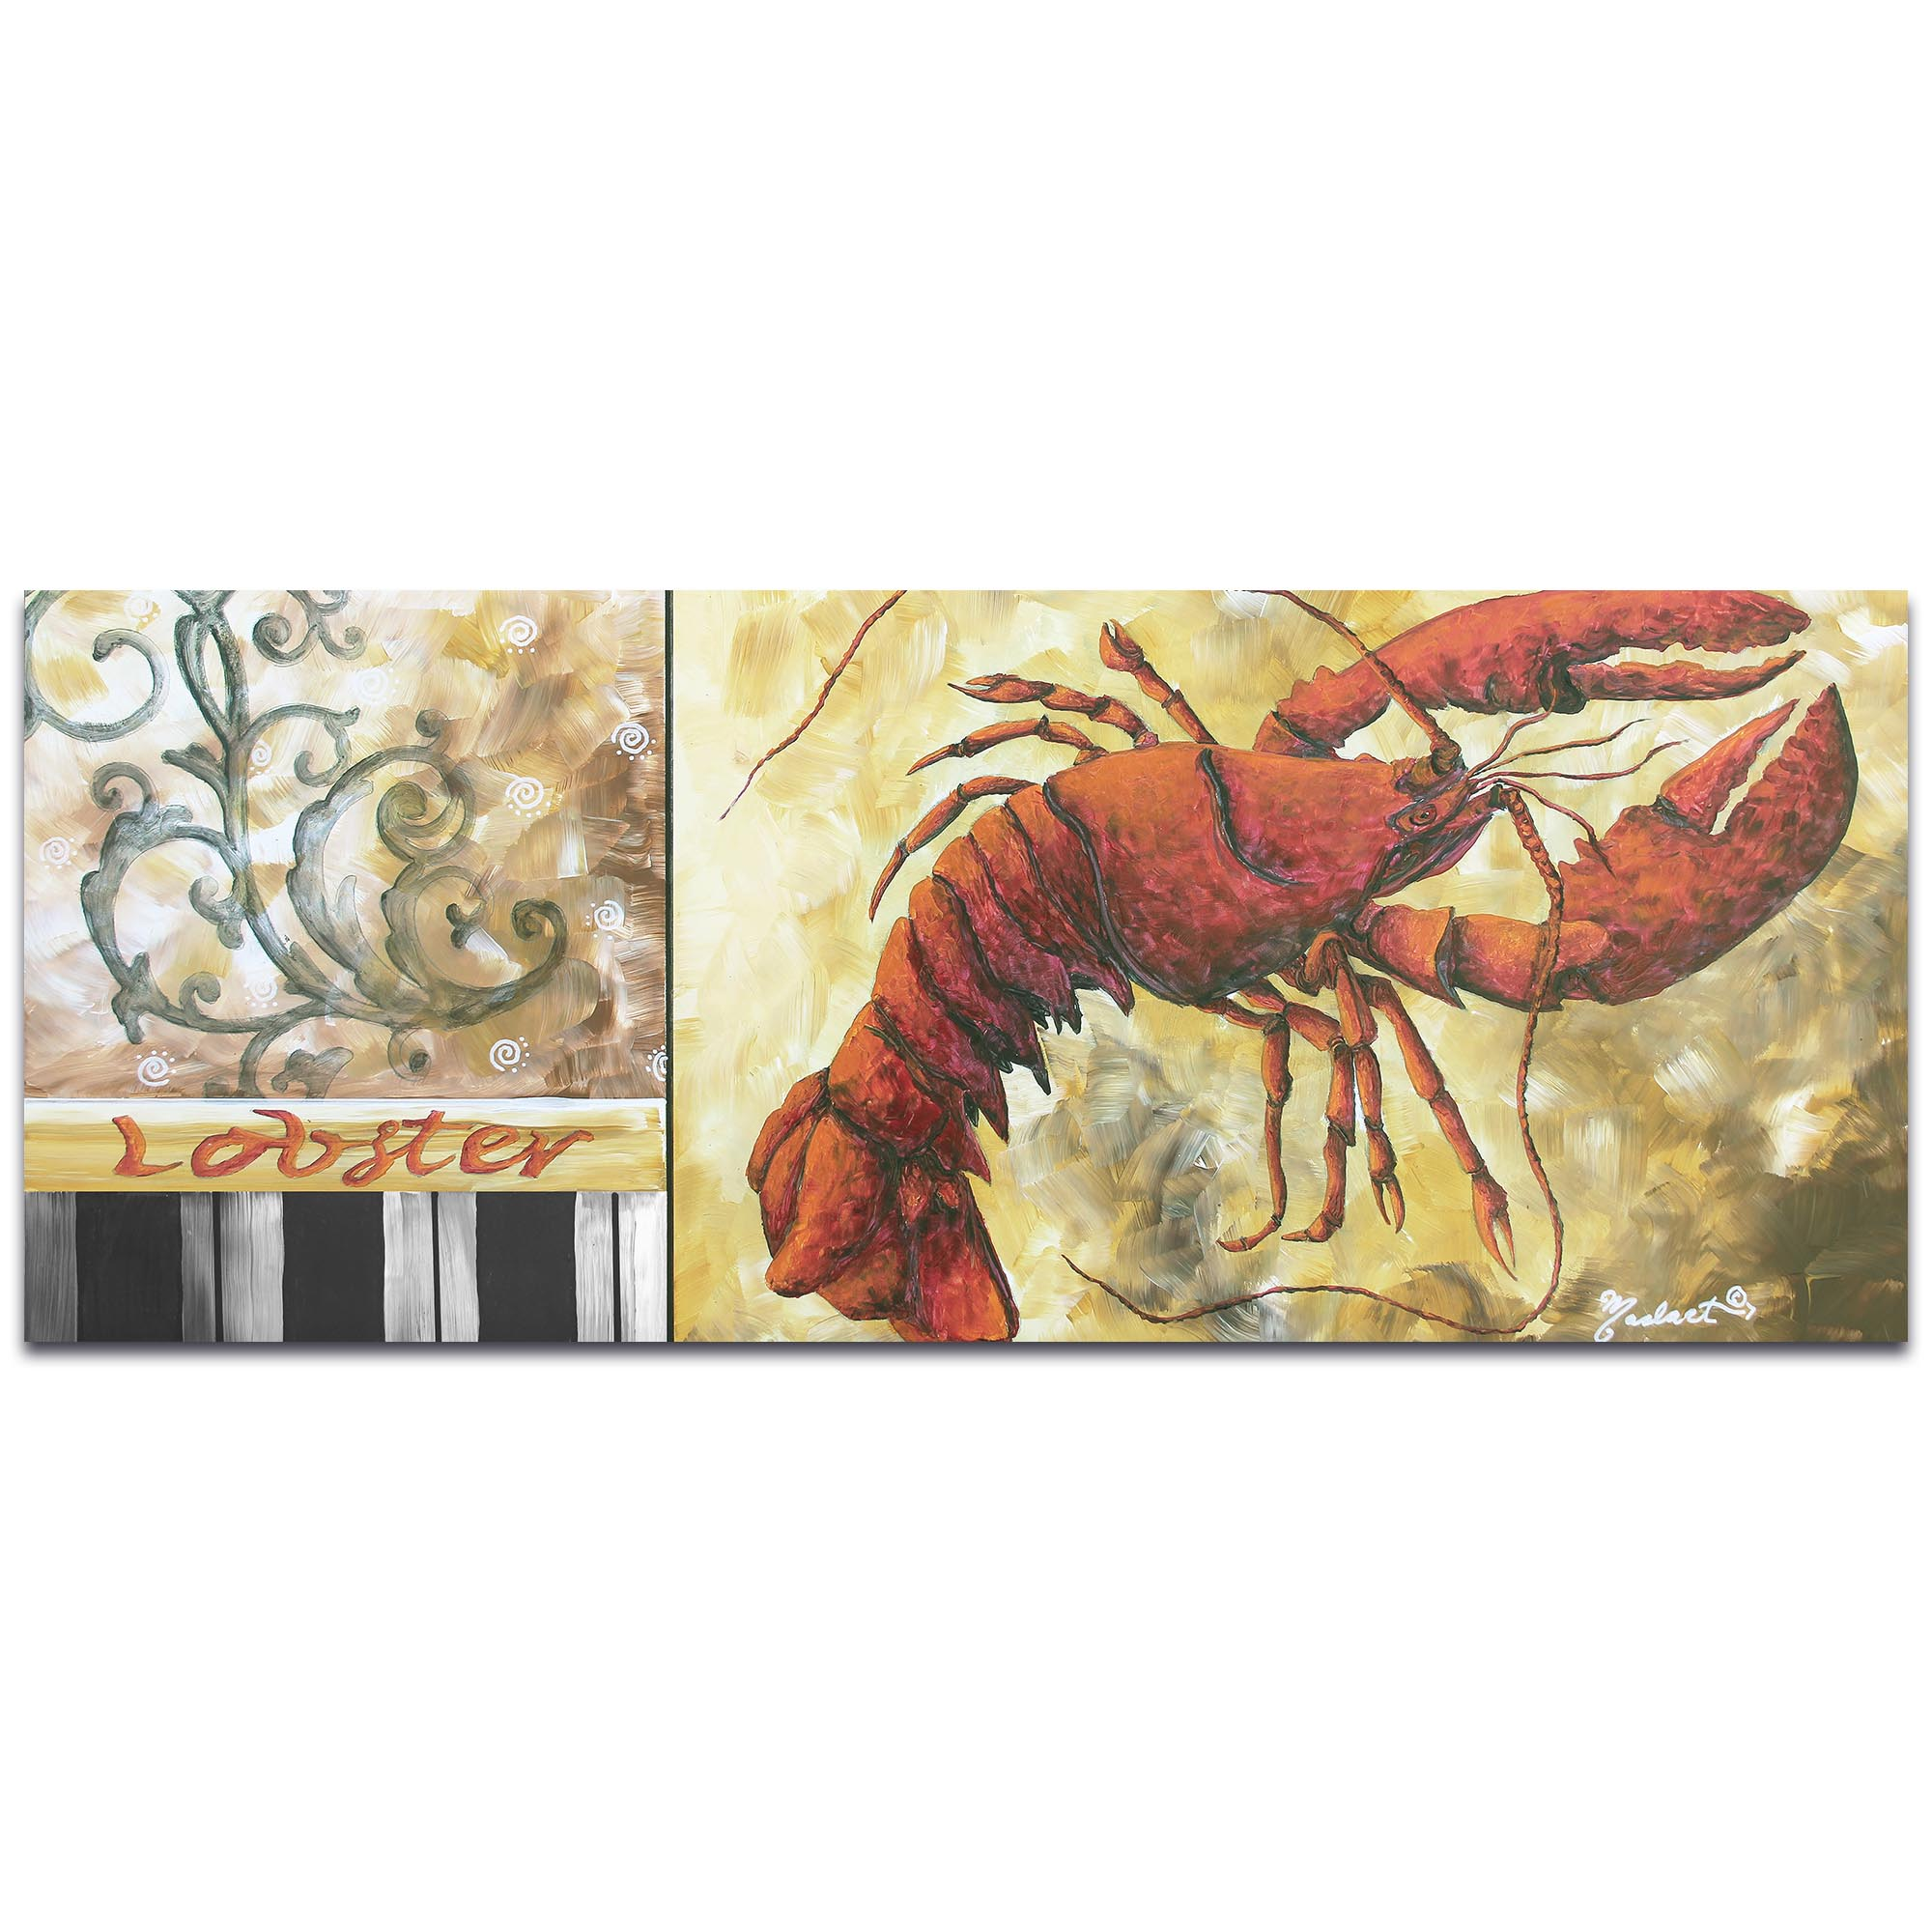 Coastal Decor 'Lobster' - Beach Wall Art on Metal or Acrylic